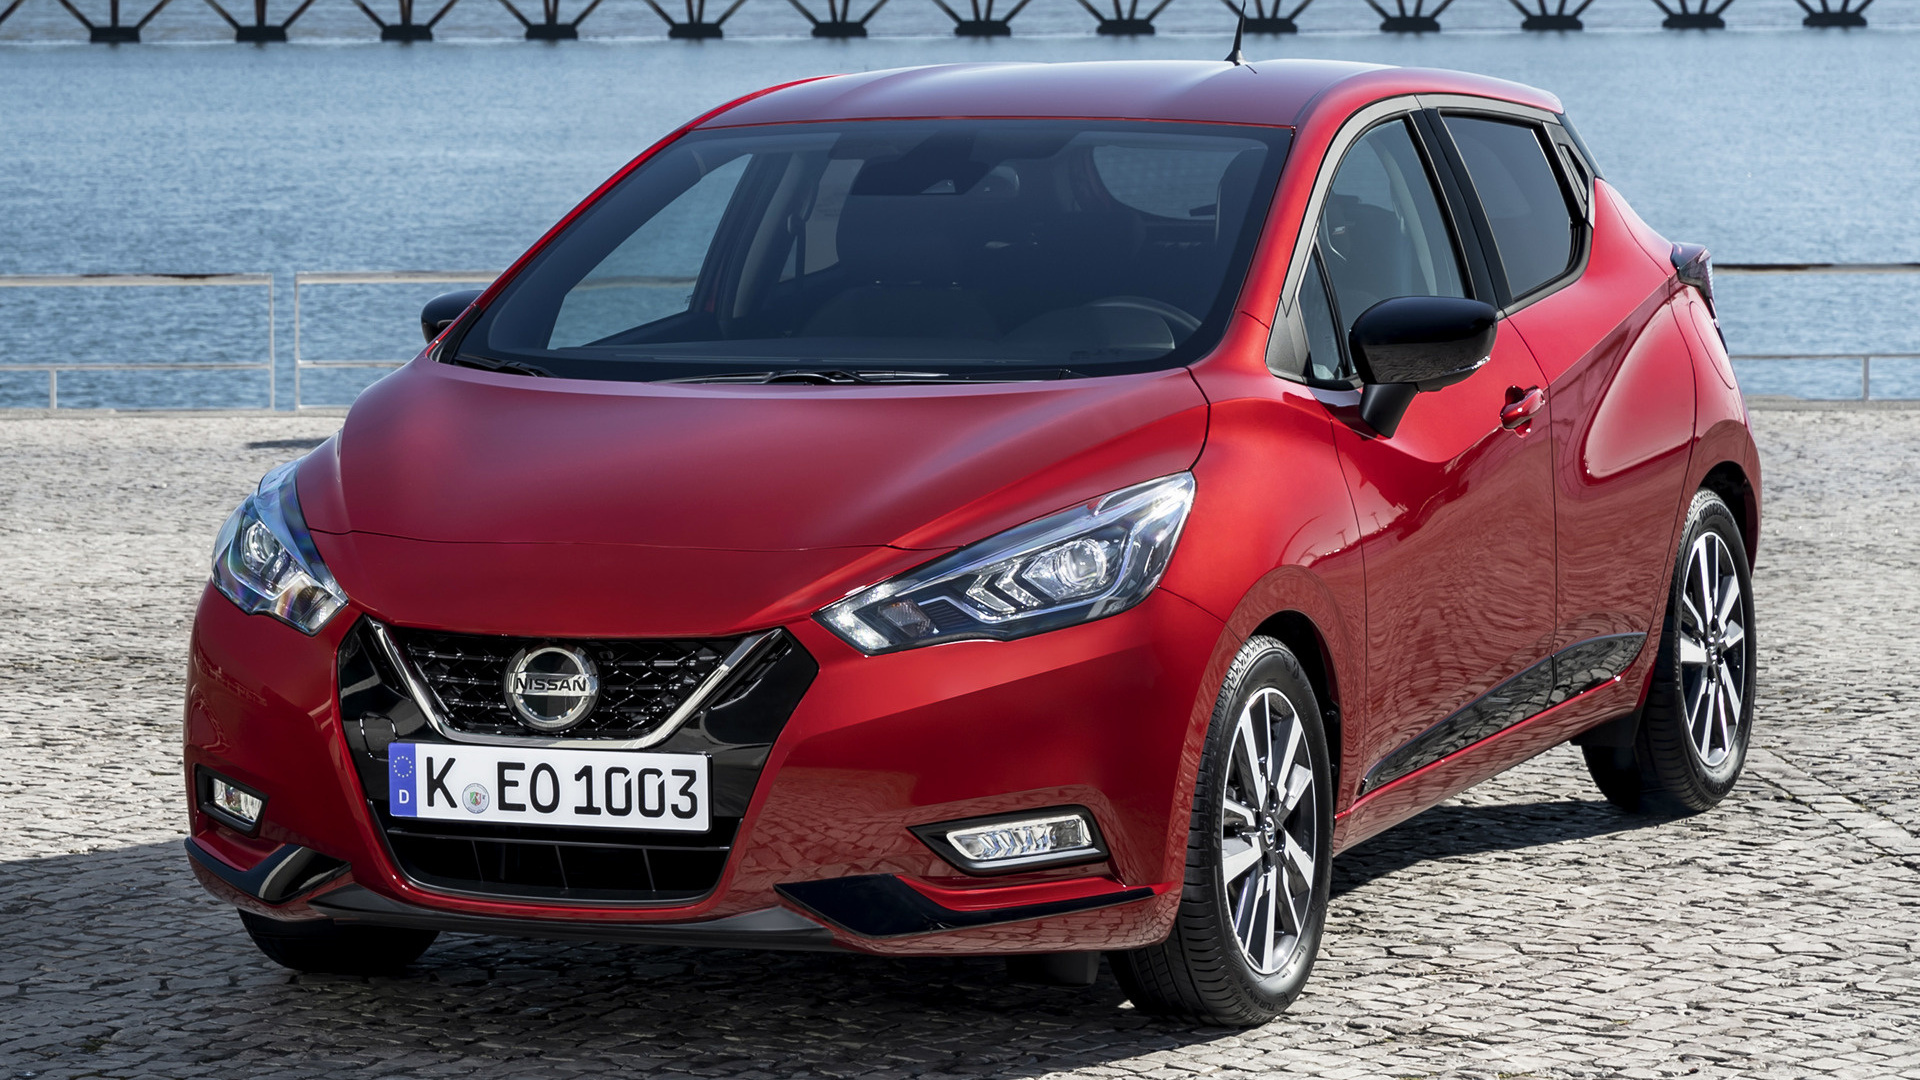 2019 Nissan Micra - Wallpapers and HD Images | Car Pixel